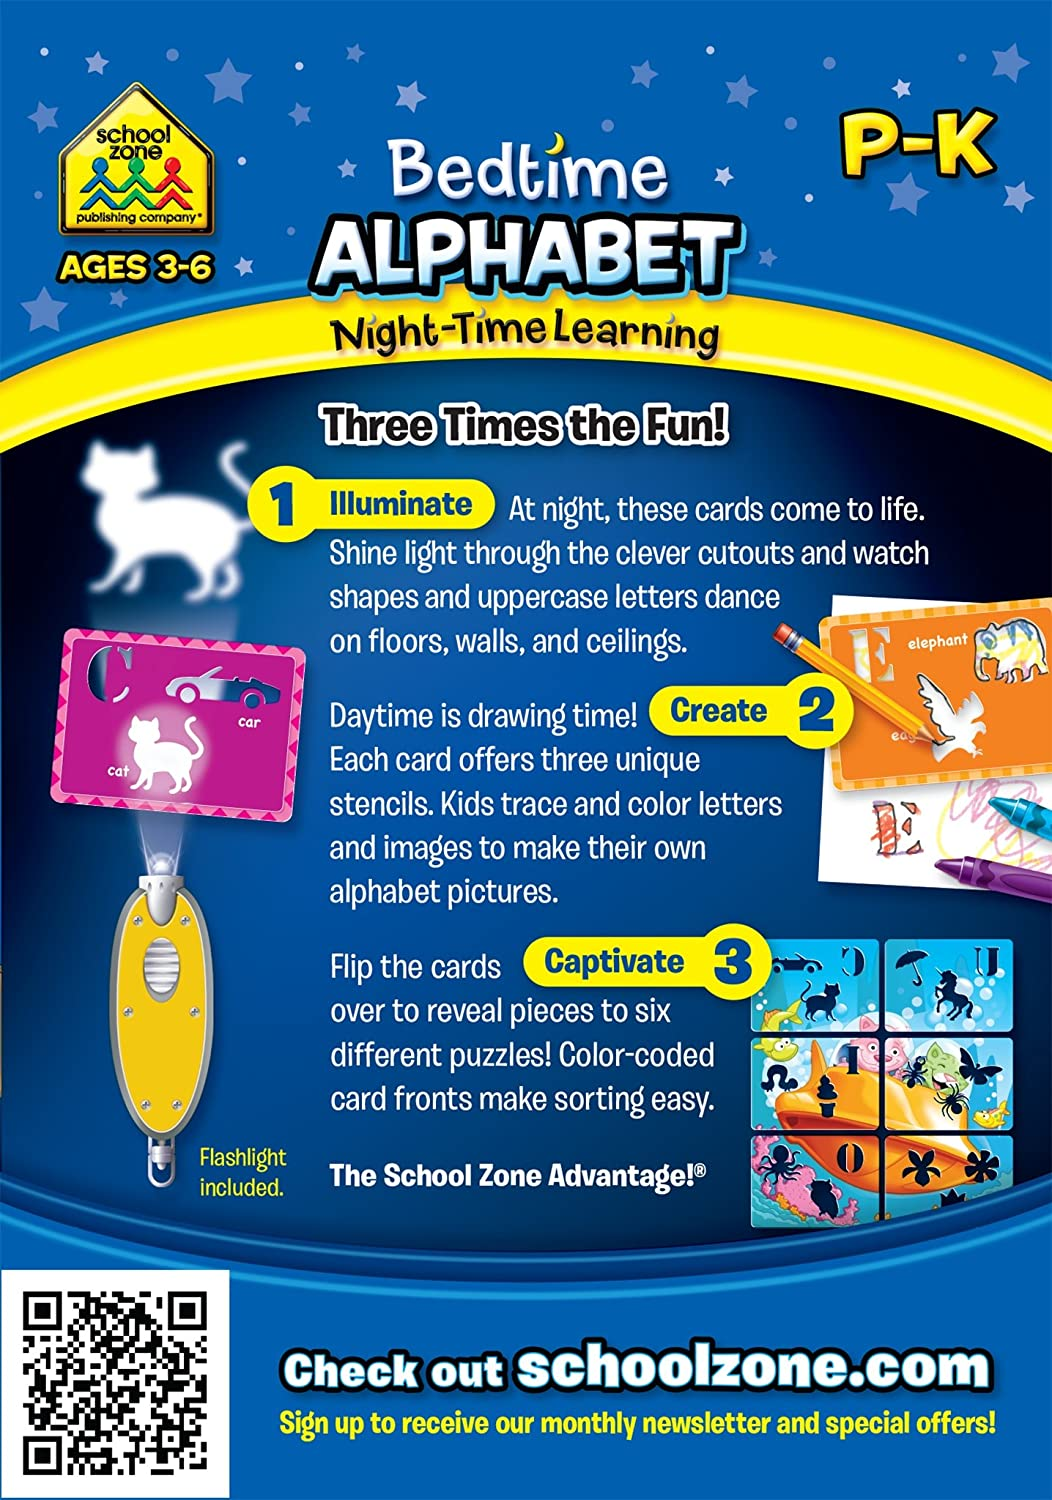 Amazon.com: School Zone Bedtime Alphabet Night-Time Learning, Interactive  Flash Cards: Toys & Games